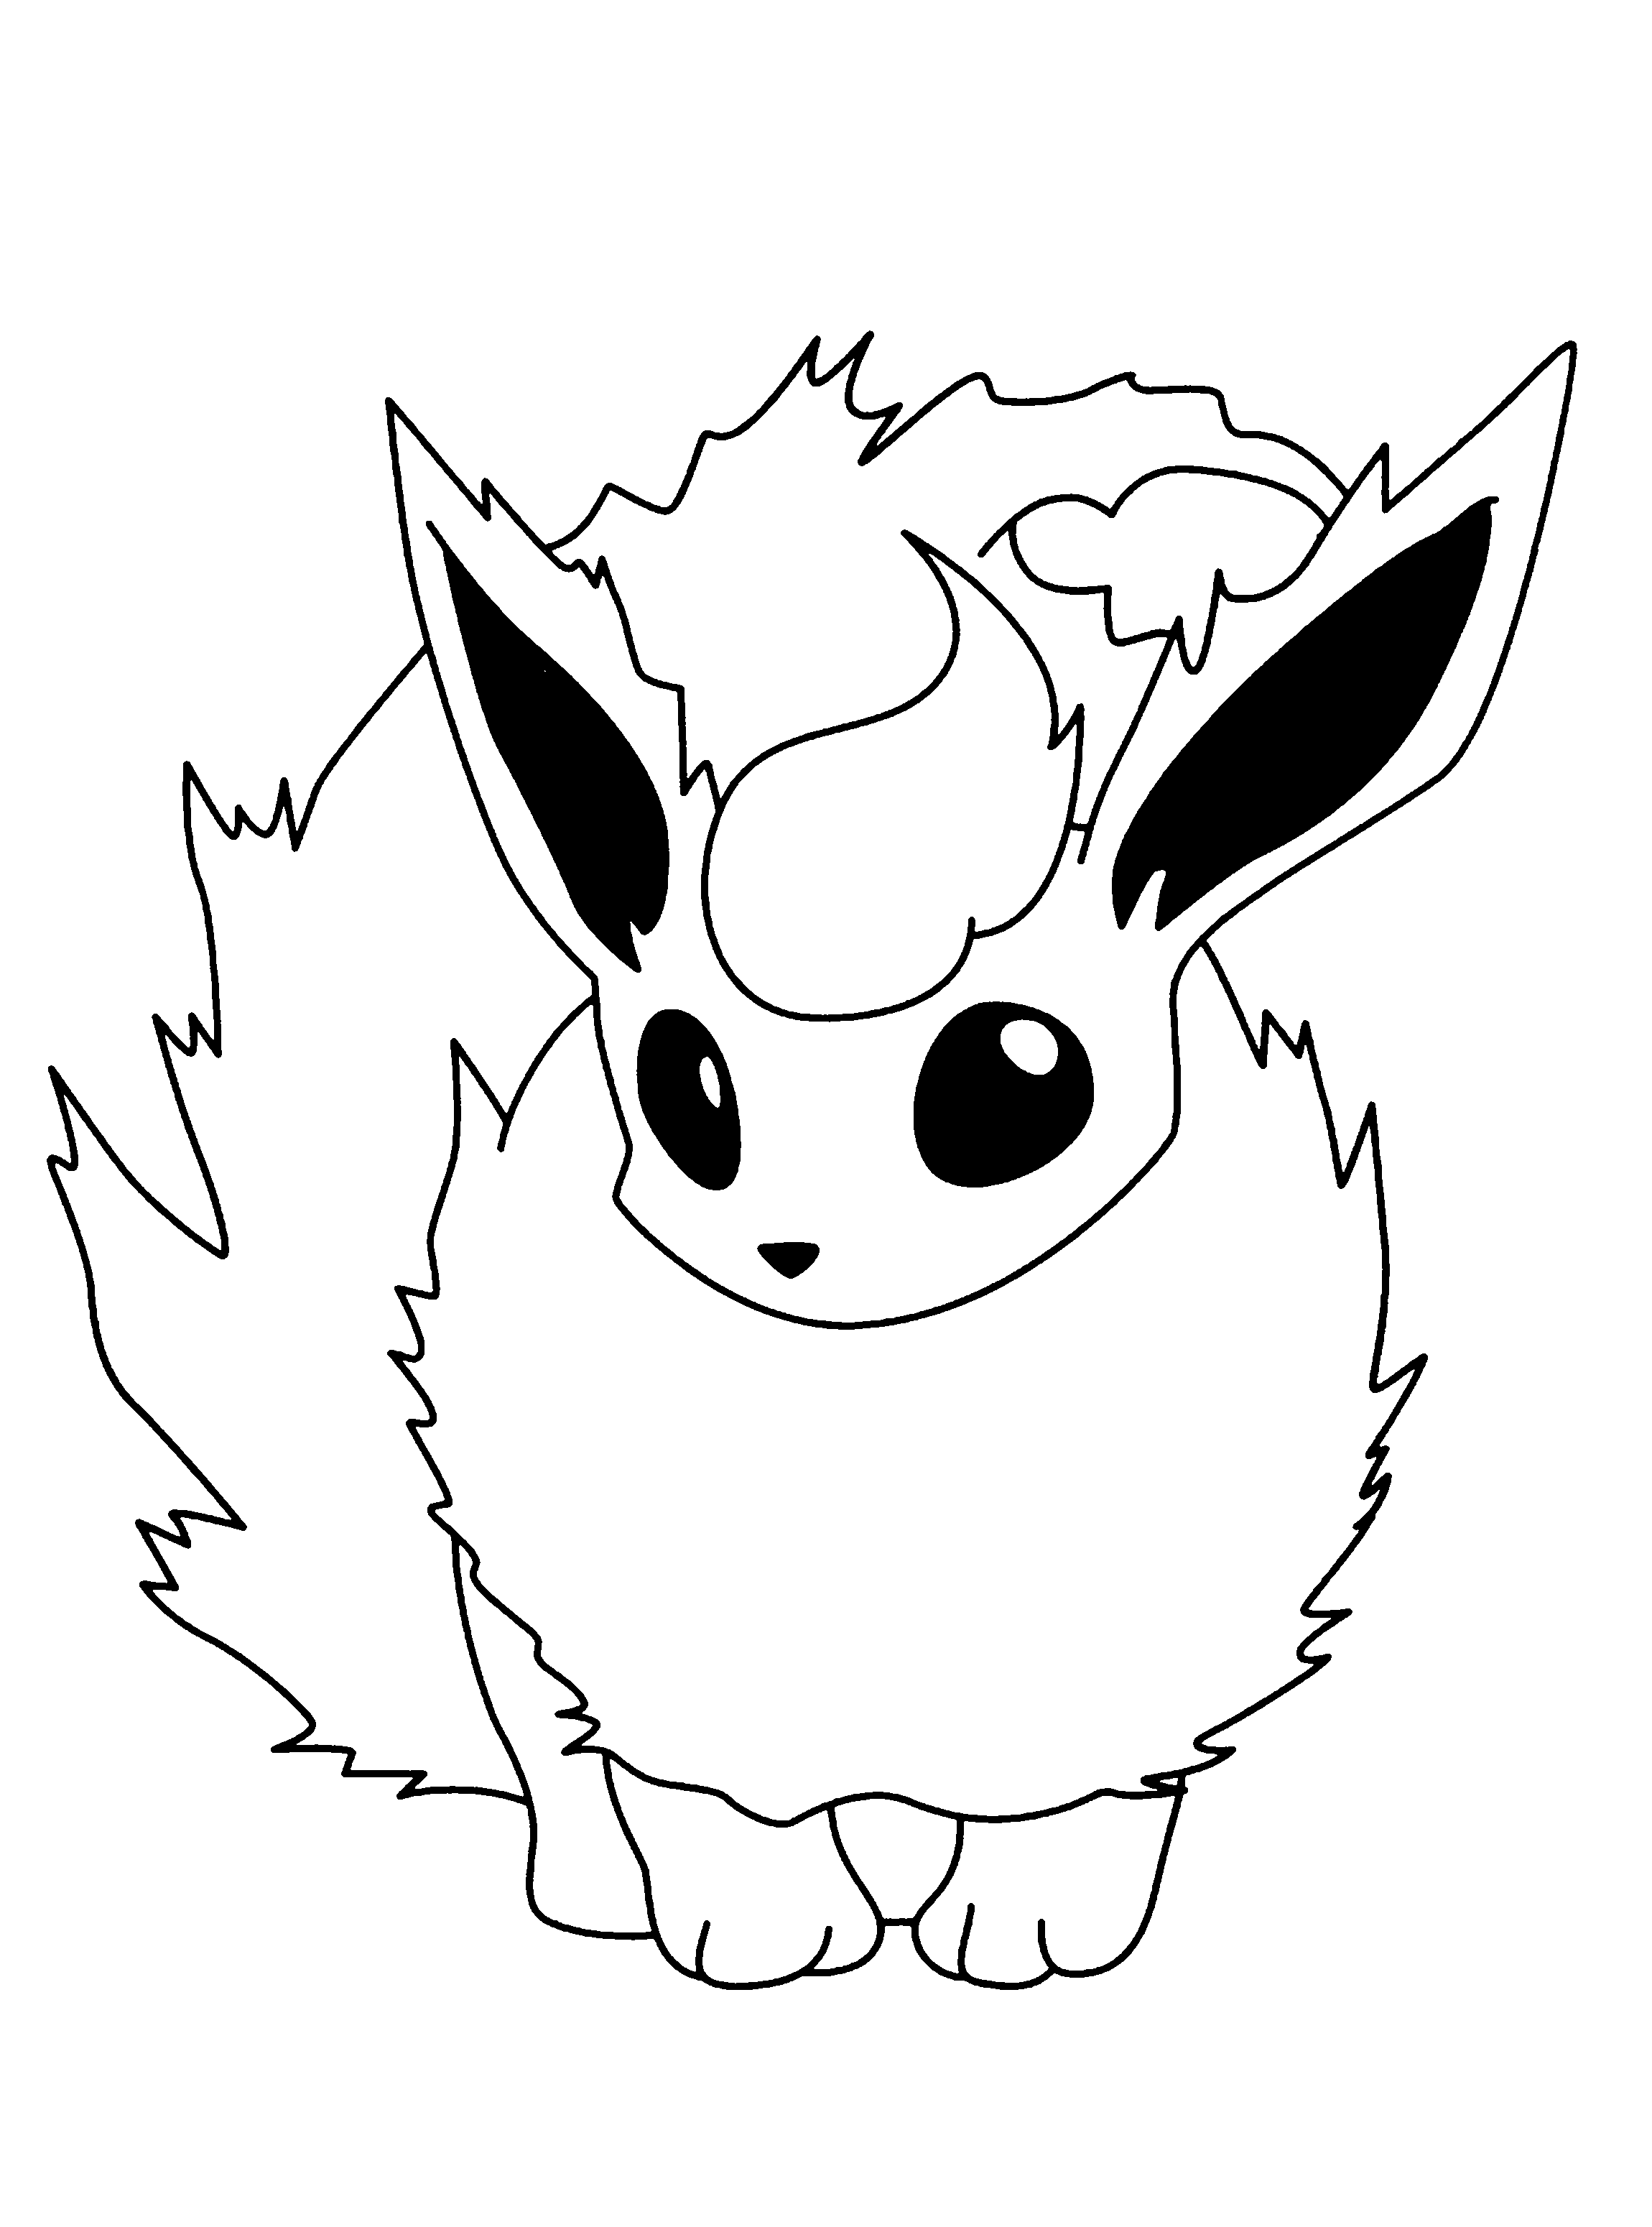 pokemon coloring pages for kids printable pokemon coloring pages download pokemon images and print pages kids for pokemon printable coloring